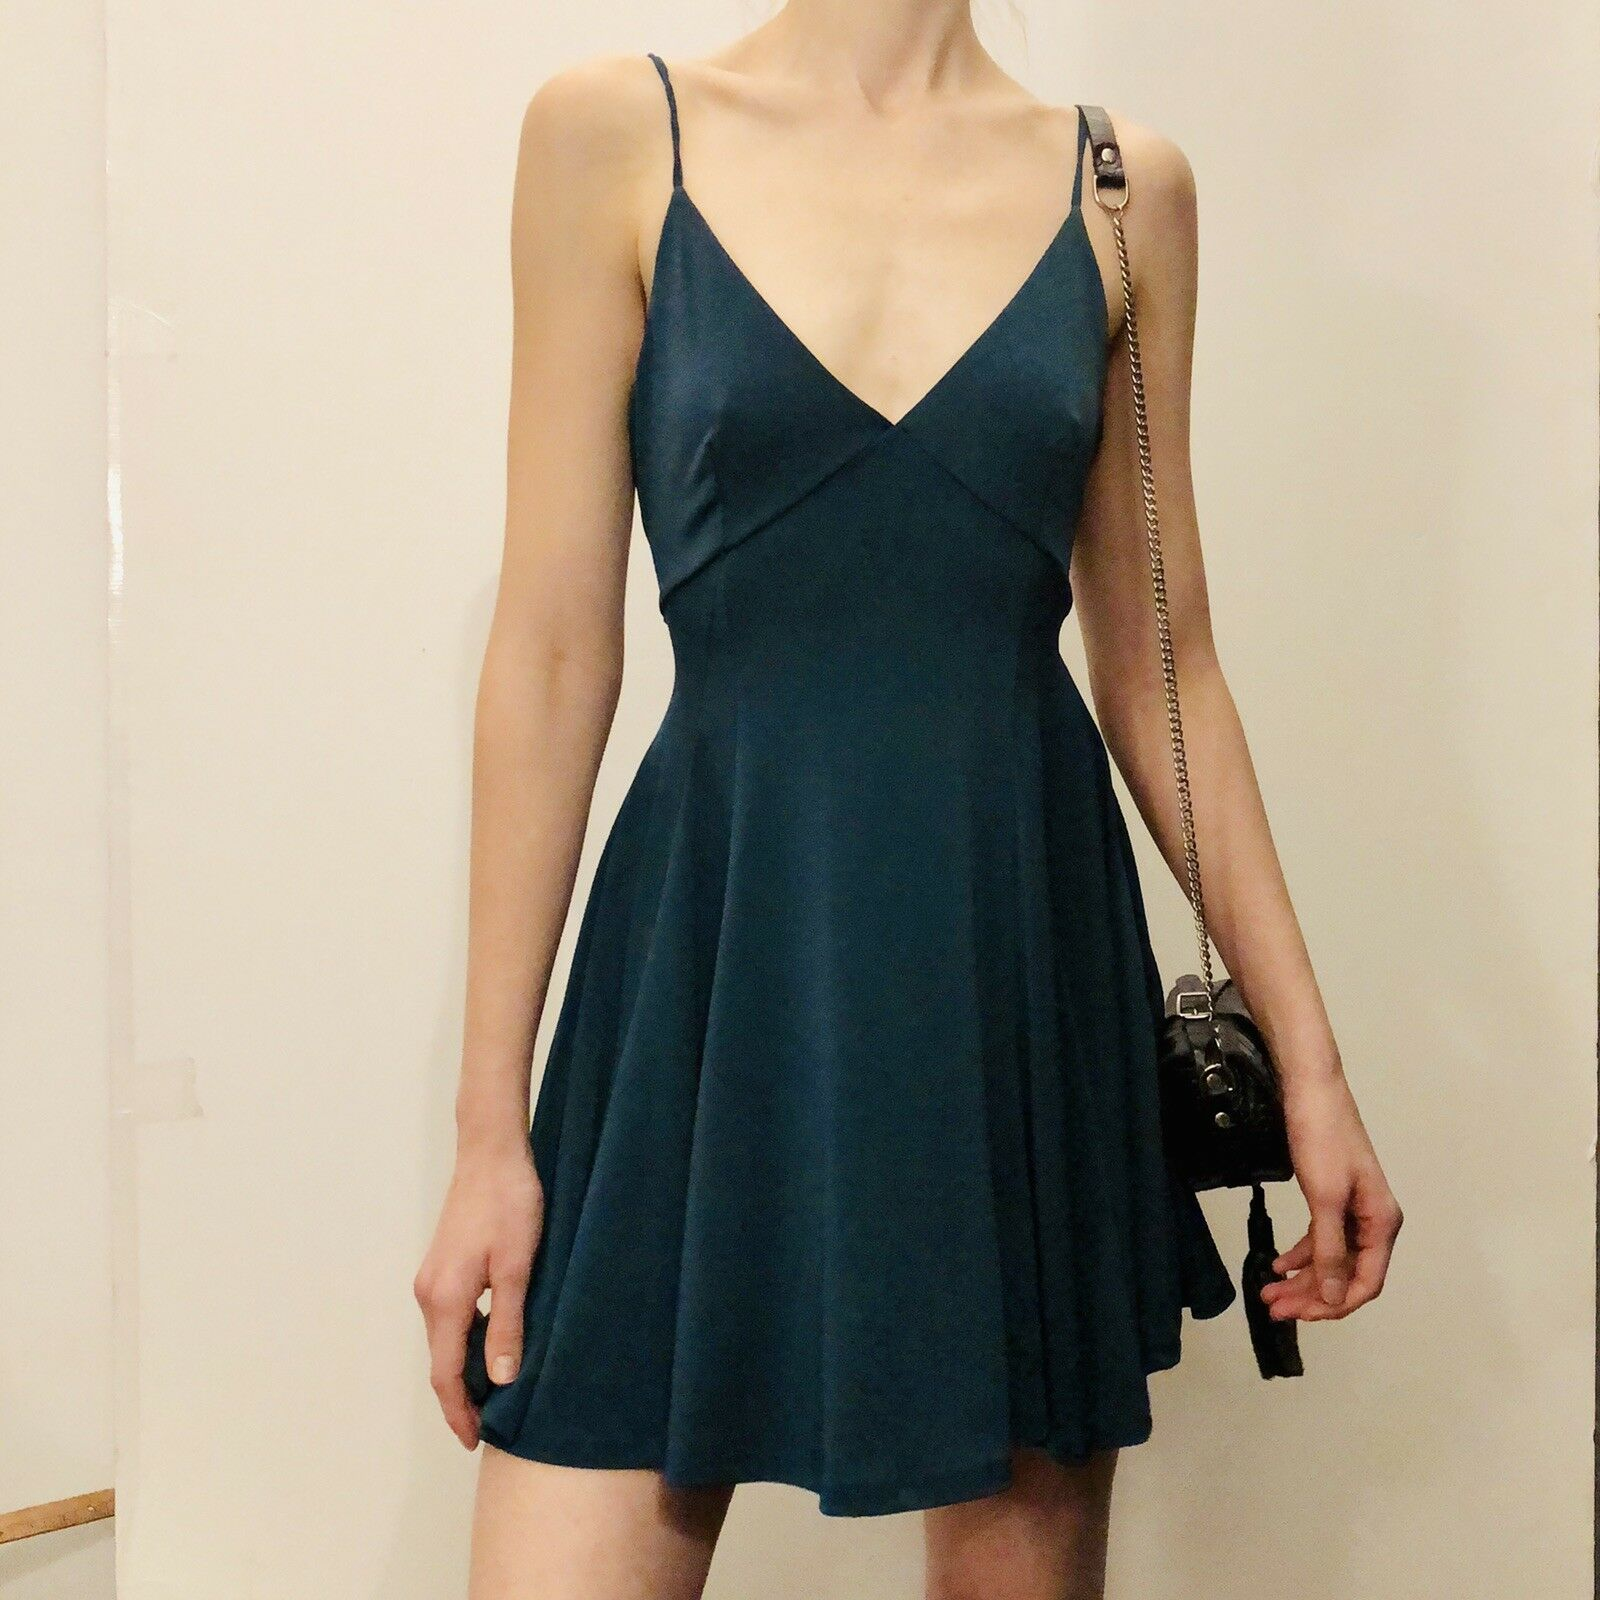 SMALL teal Silence And Noise Dress